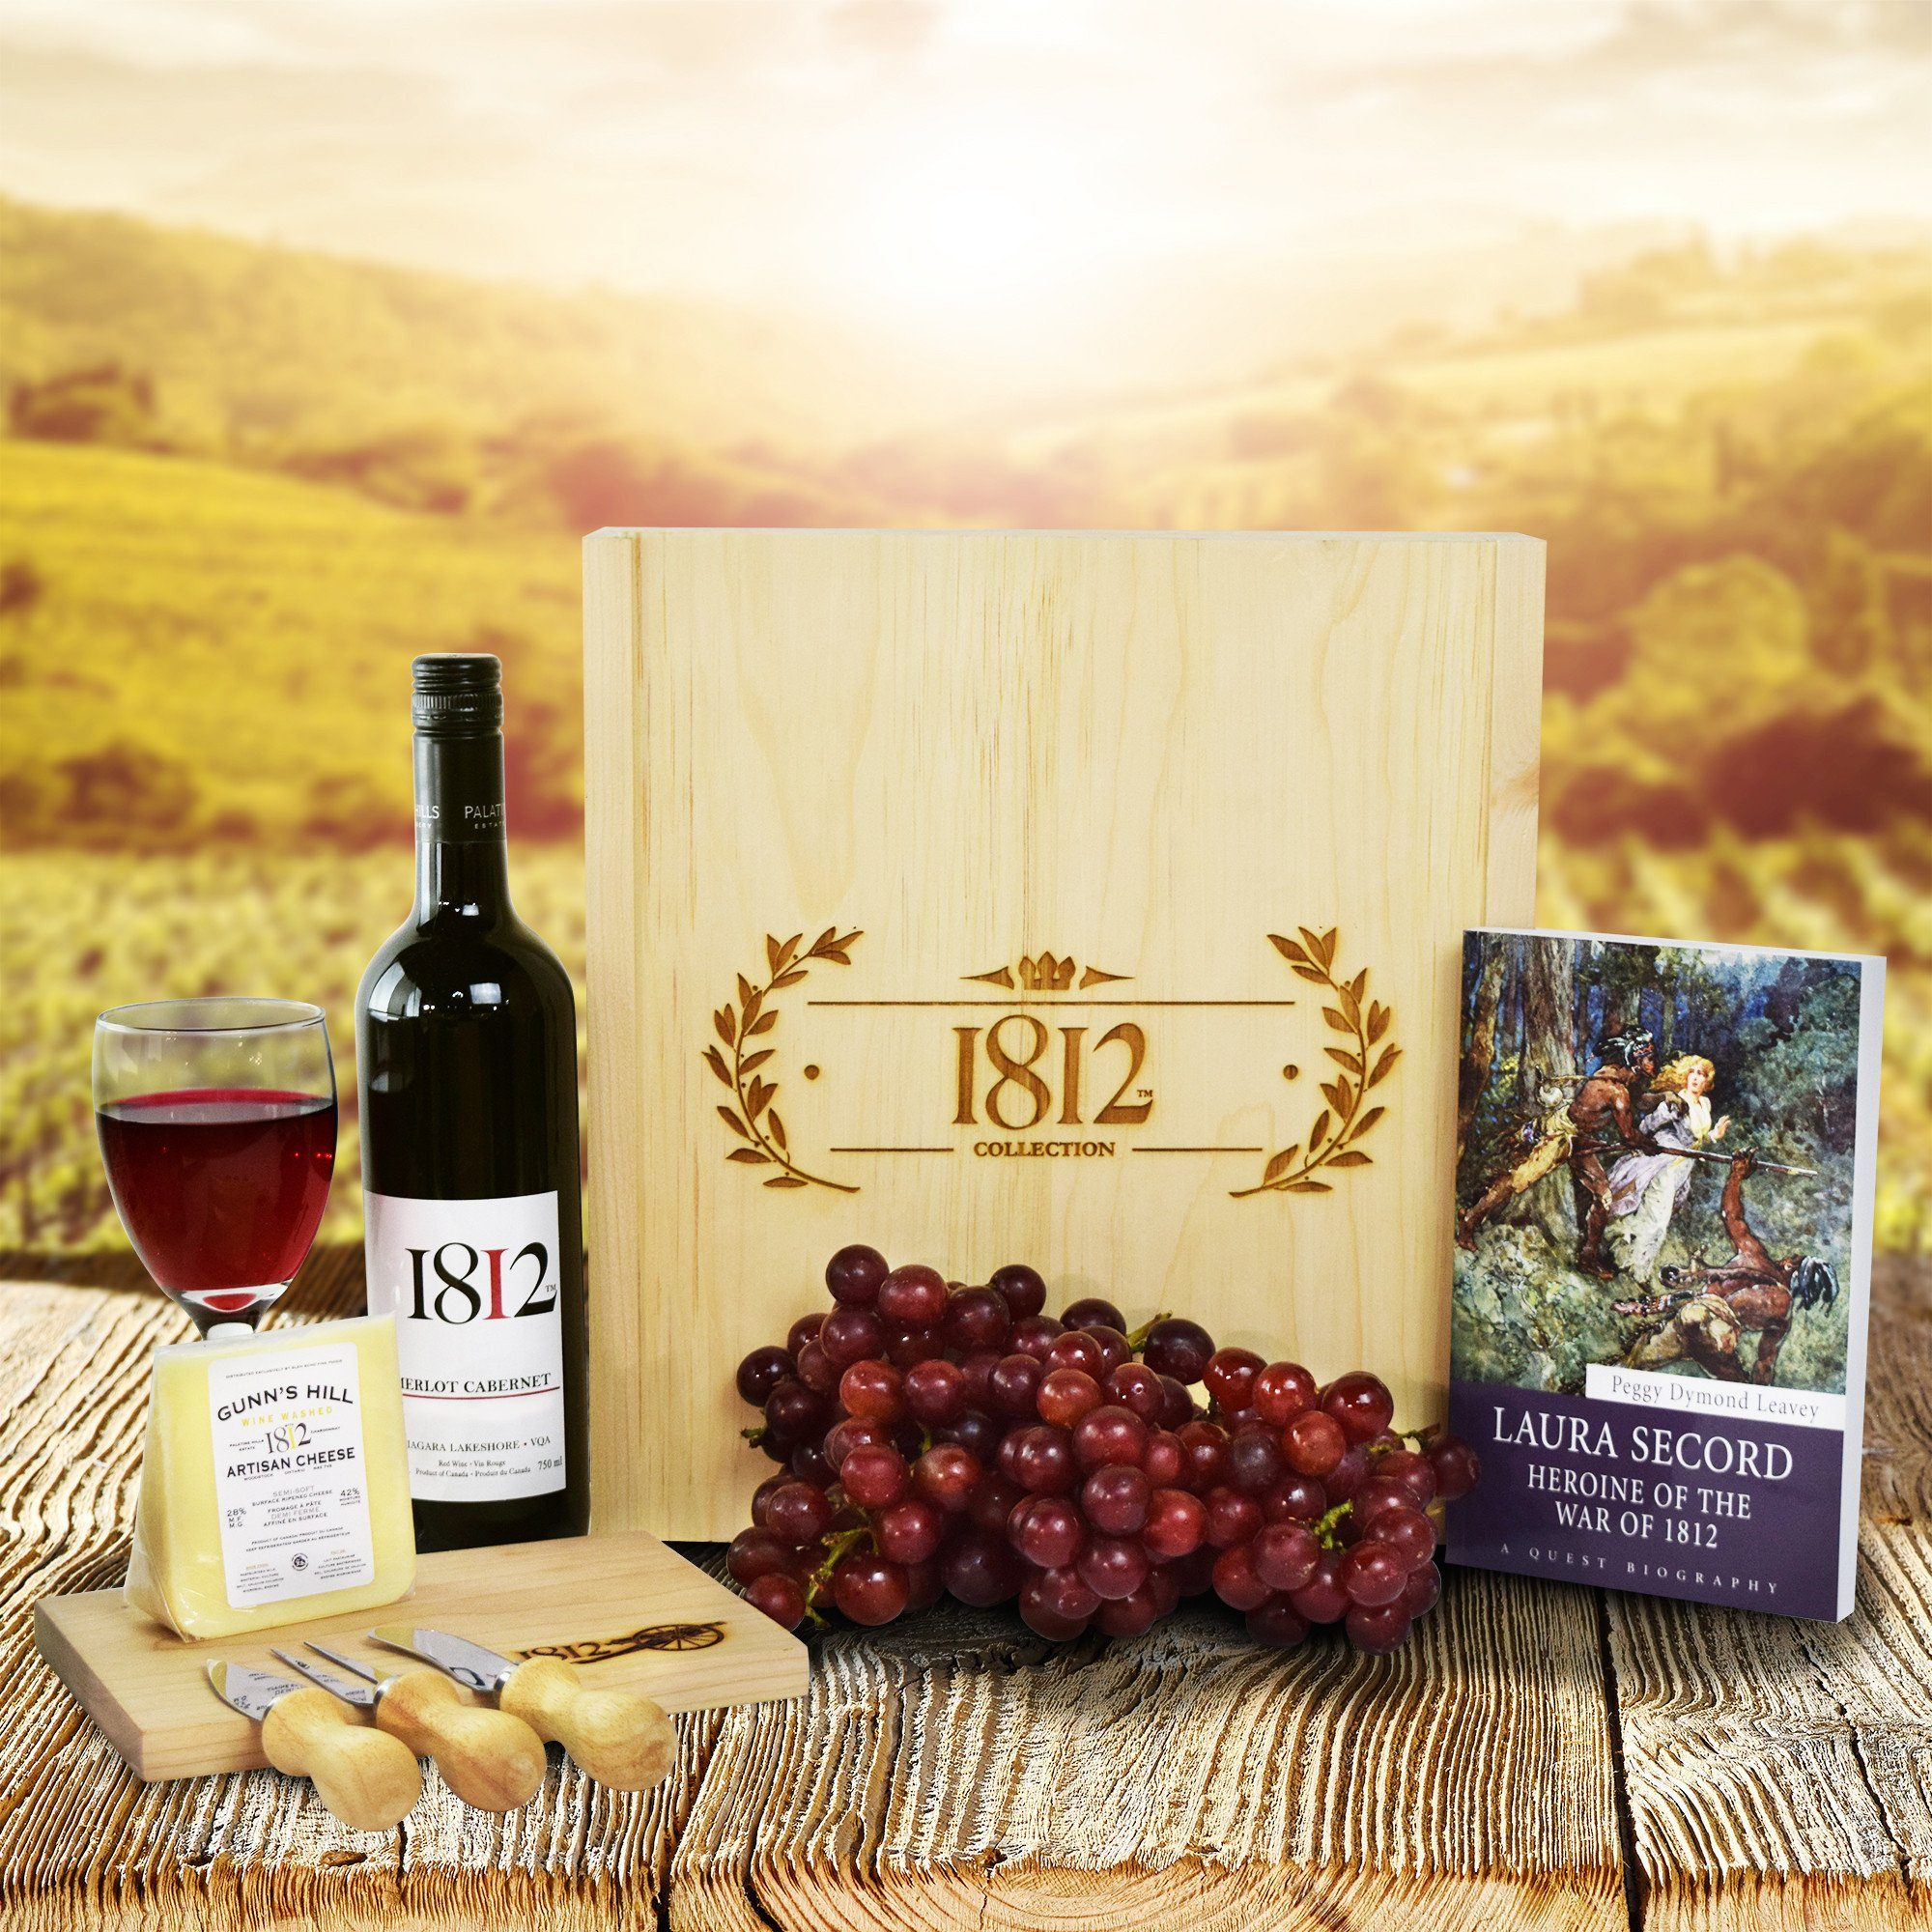 War of 1812 Red Wine Crate